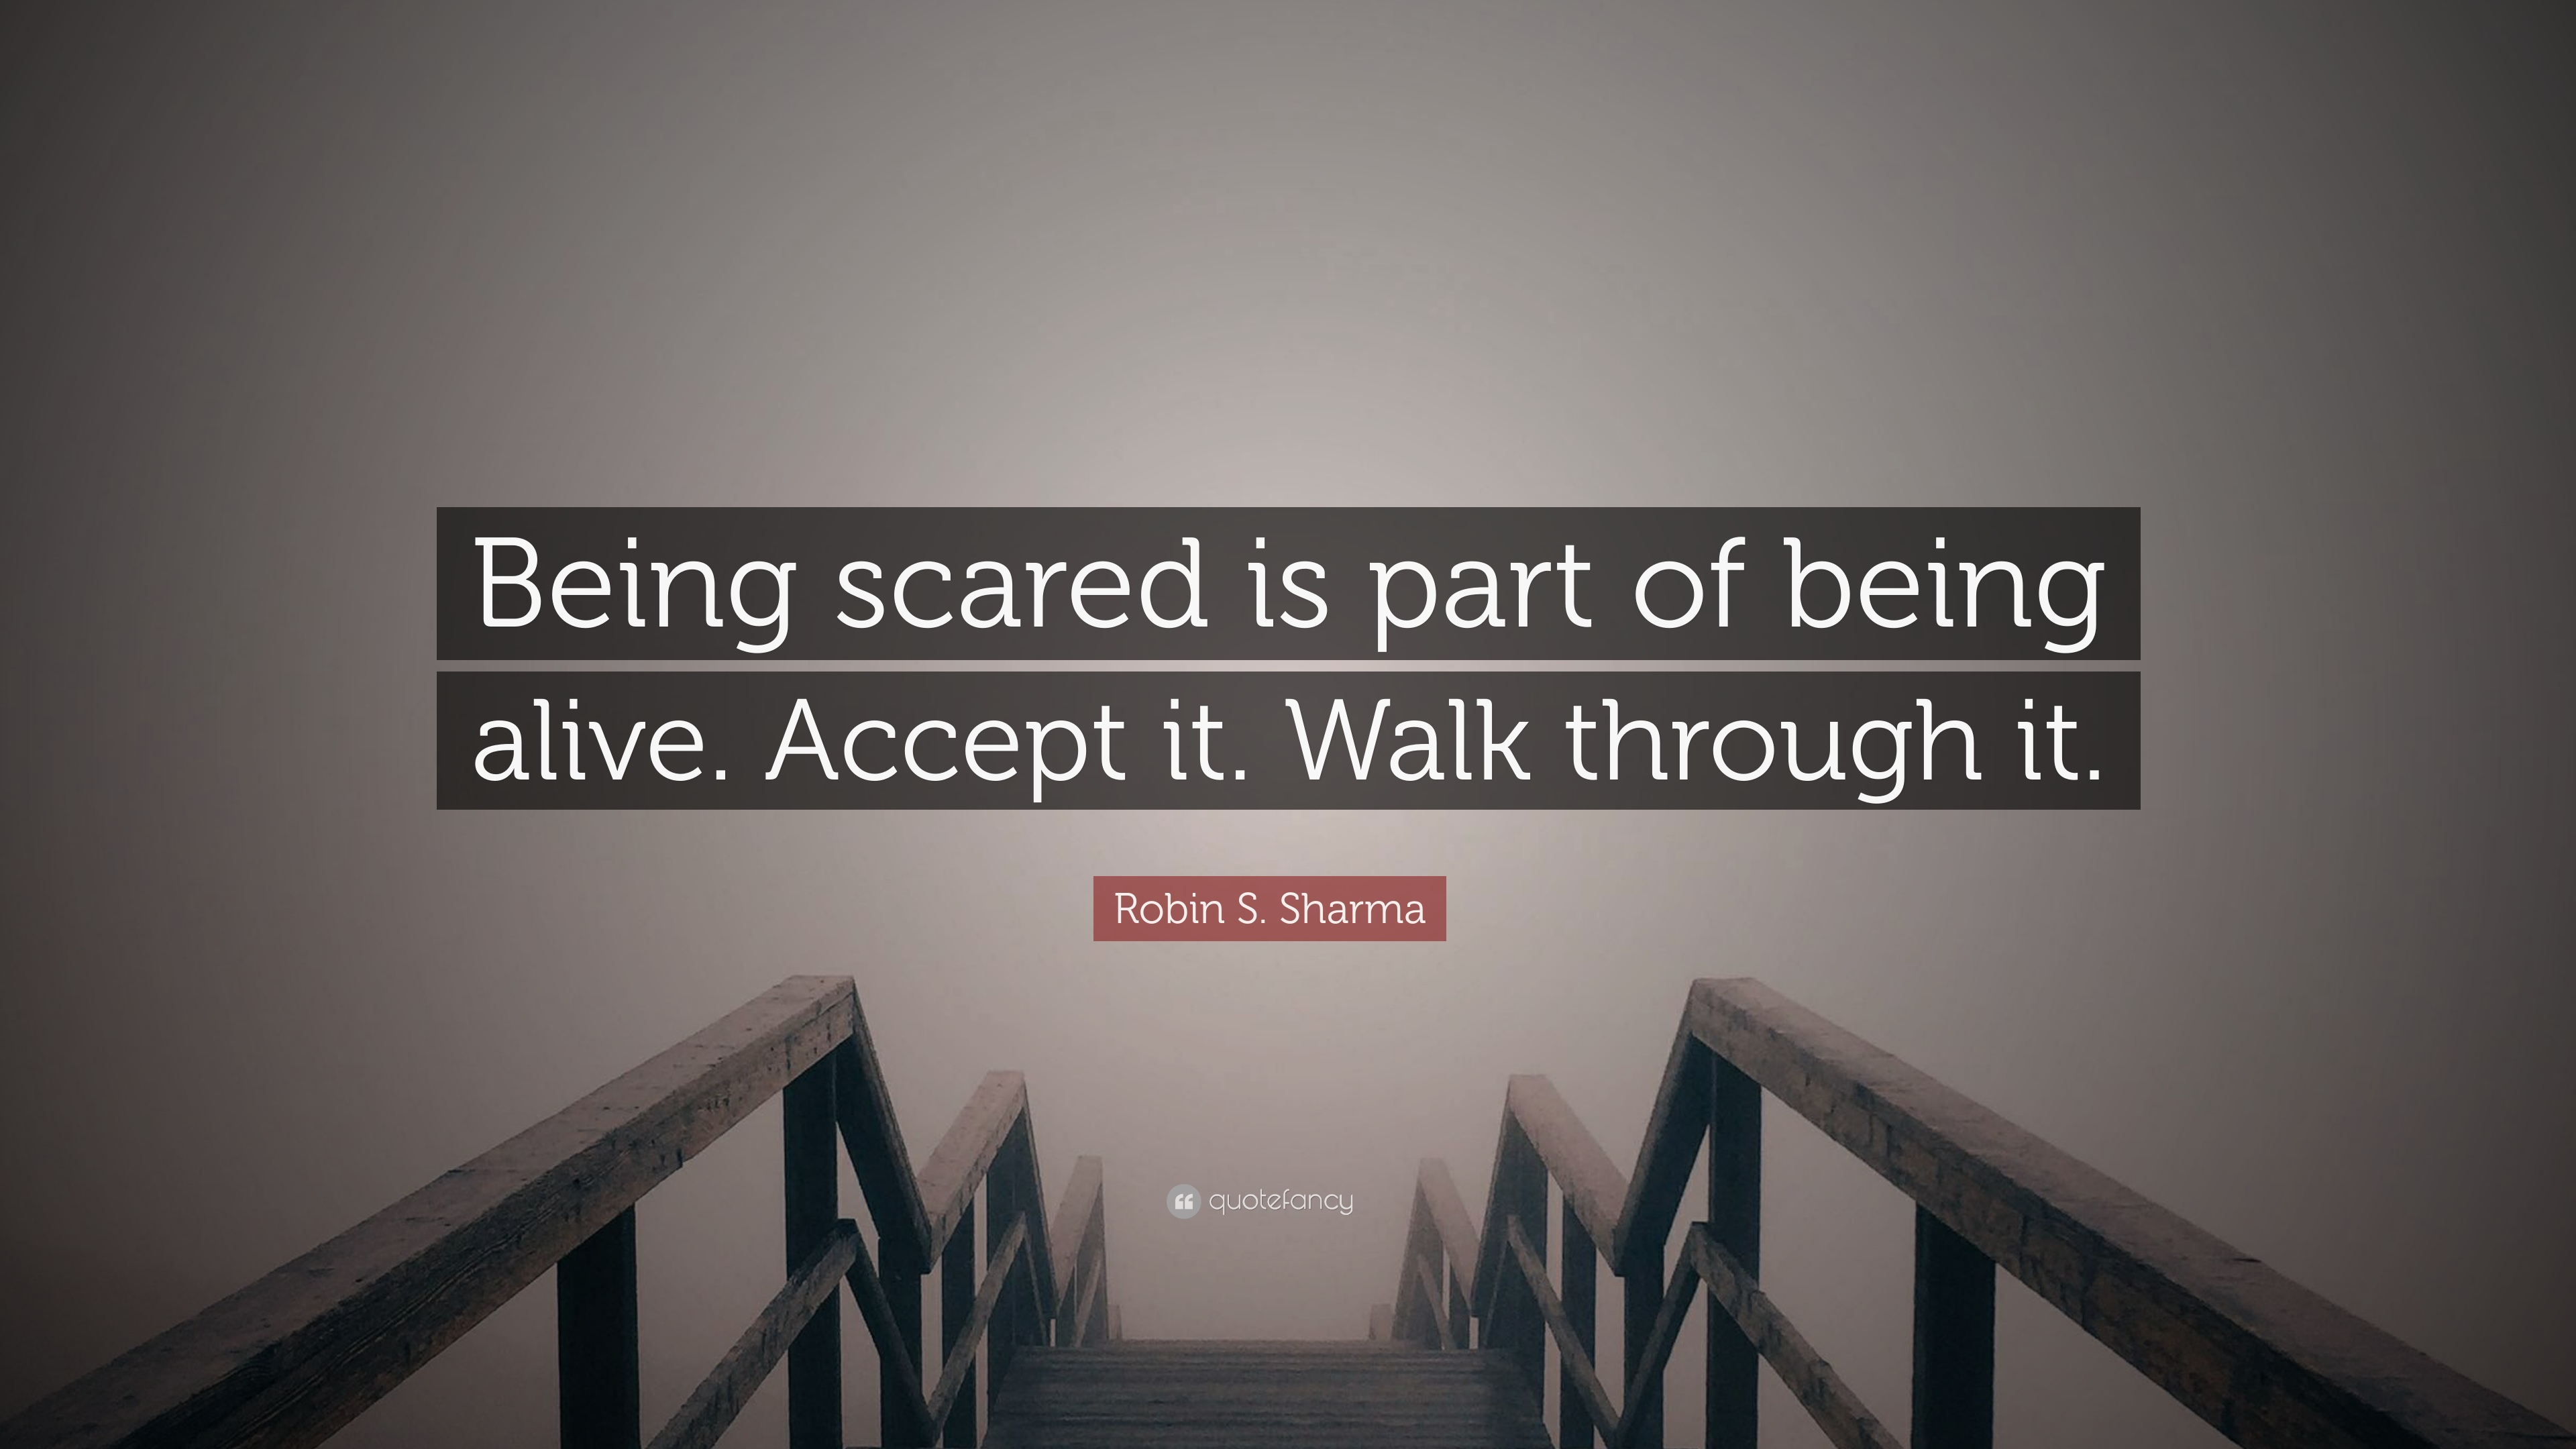 Robin S Sharma Quote Being Scared Is Part Of Being Alive Accept